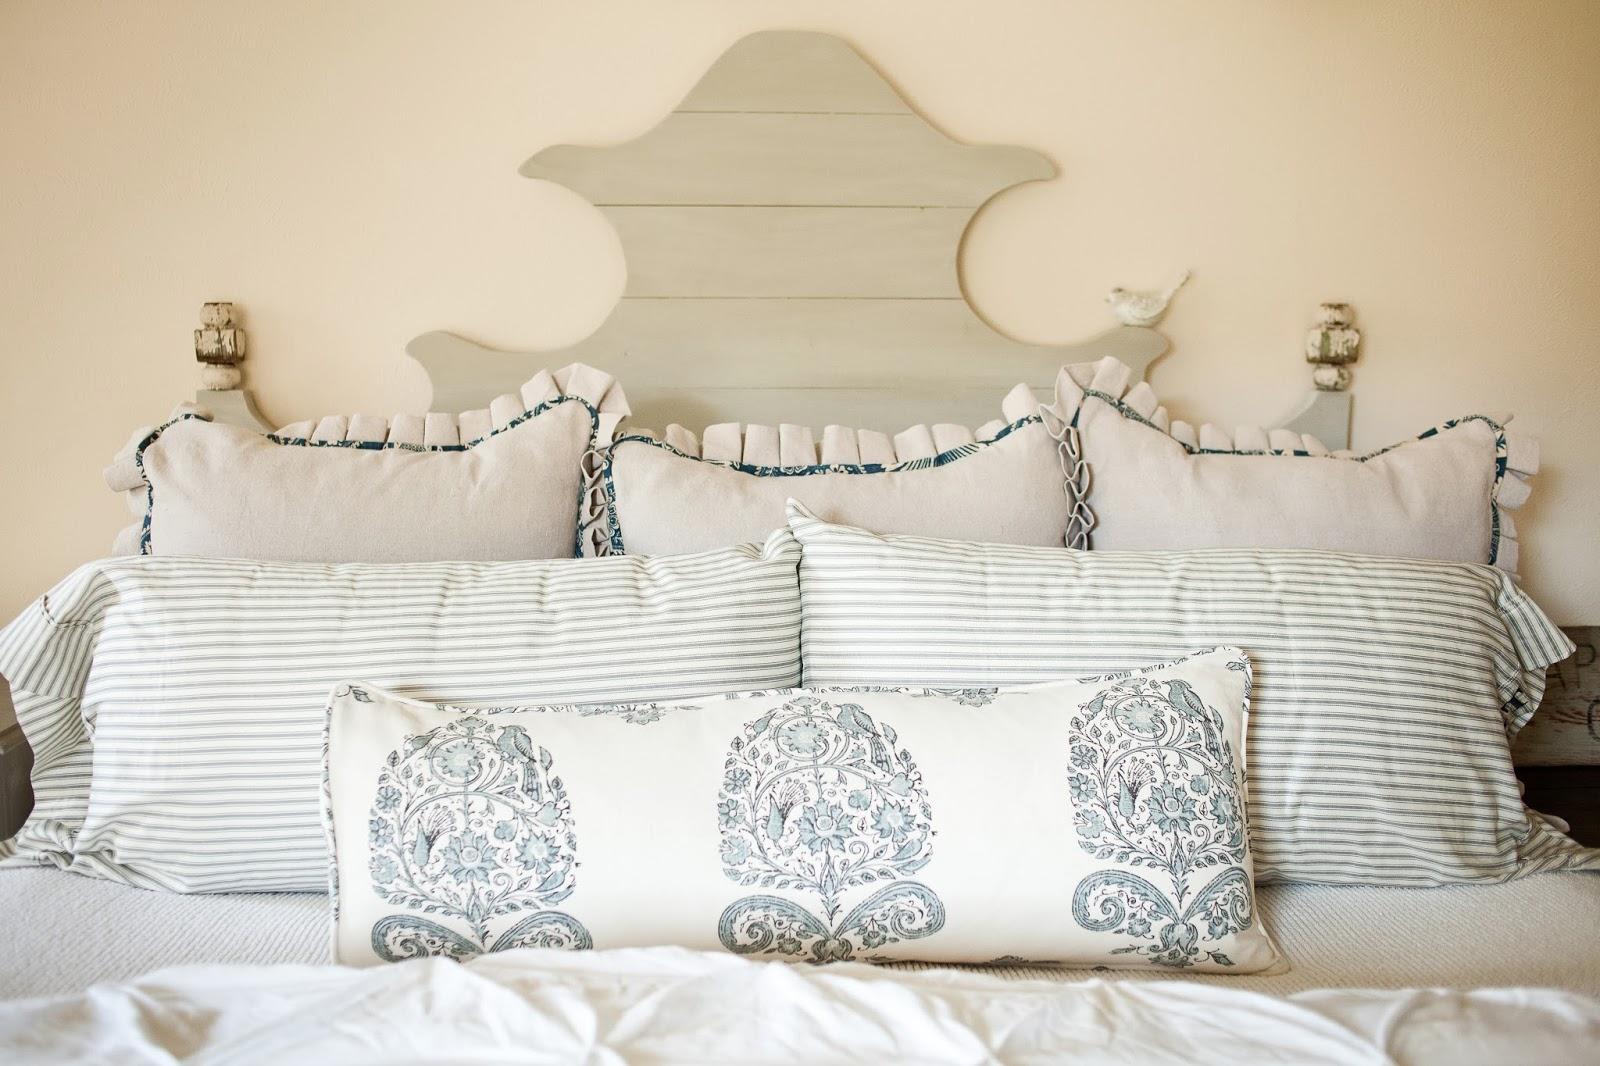 a stroll thru life 3 1 14 4 1 14 i am in love with our ballard designs knock off headboard that hubby built for me last year shopping with my kids for the little bird was a hoot